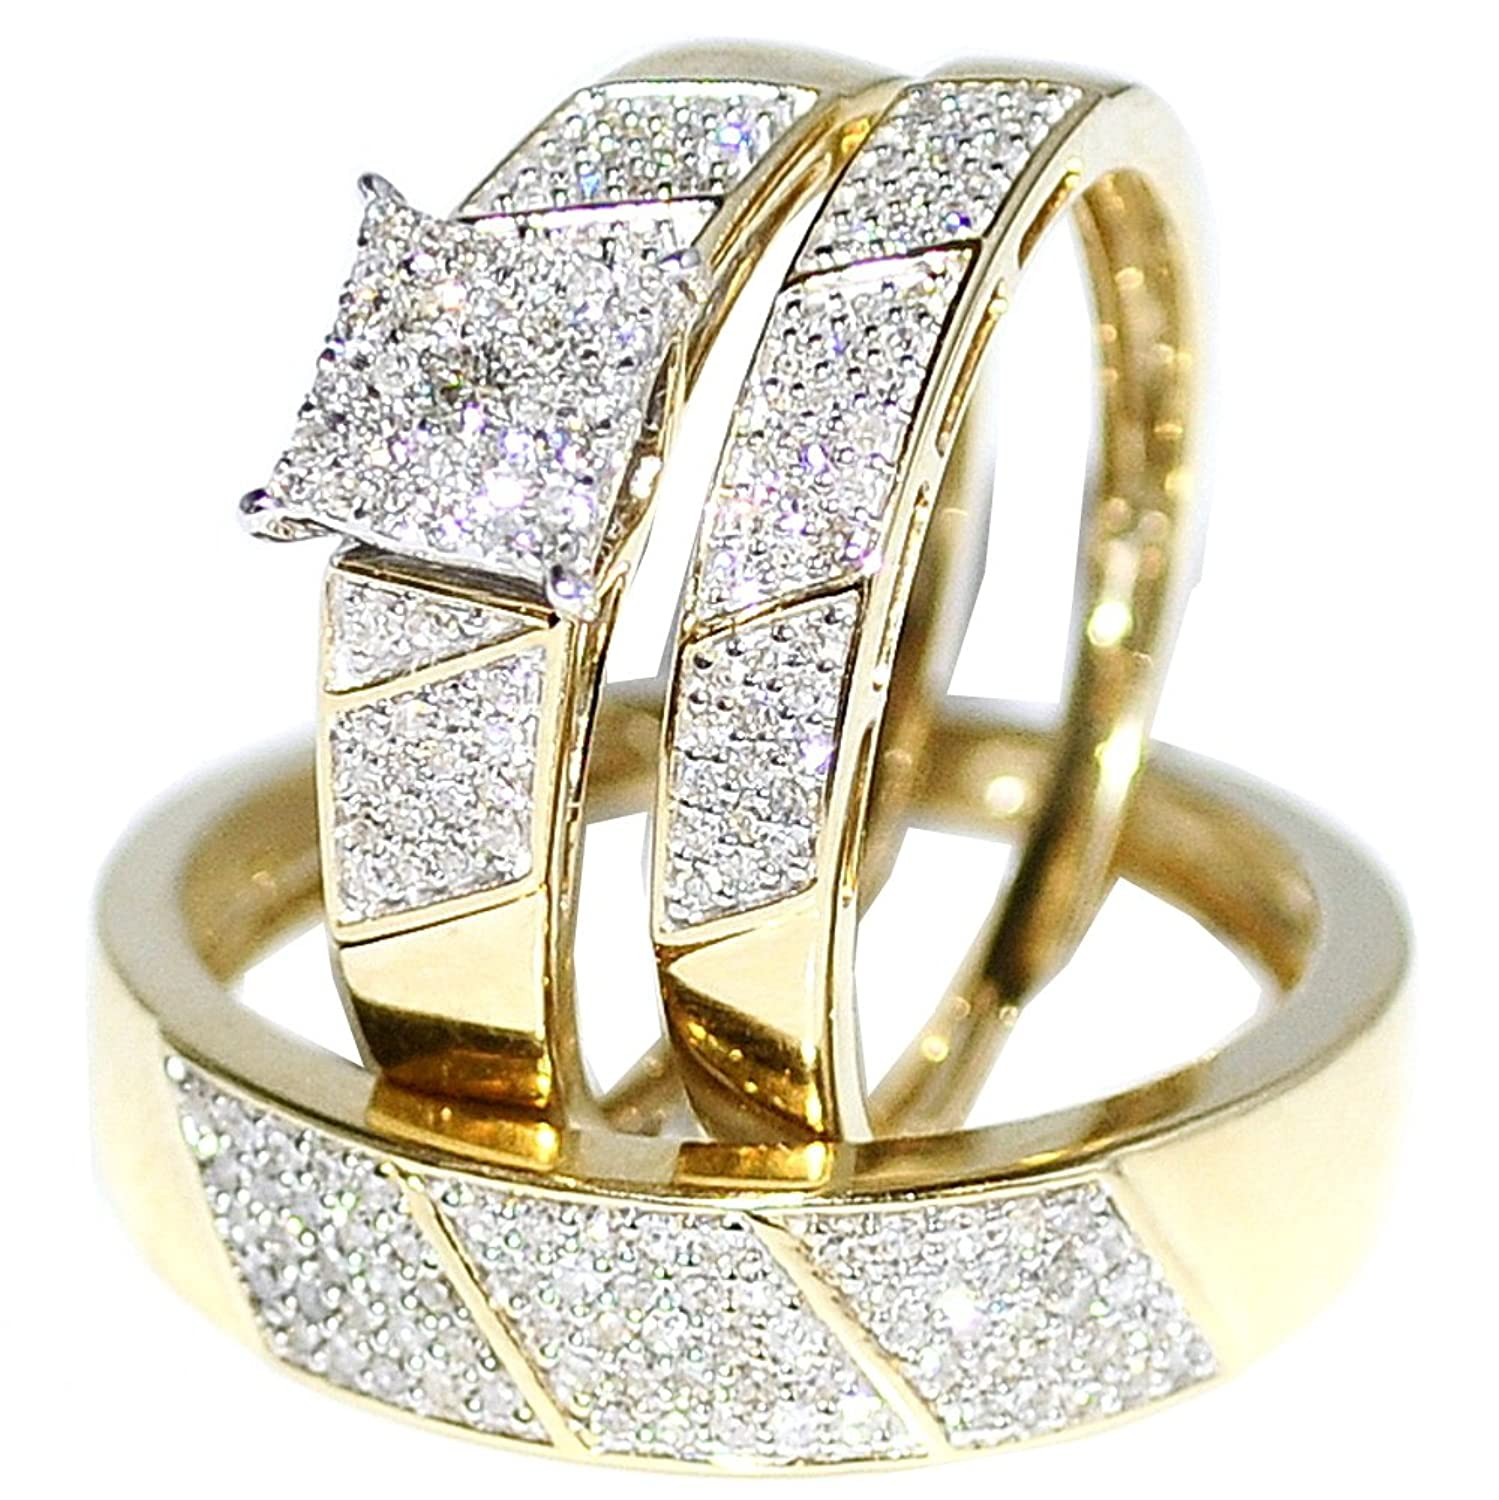 cushion bands wedding platinum white band gold solitaire set engagement walmart ip ring halo sets com diamond